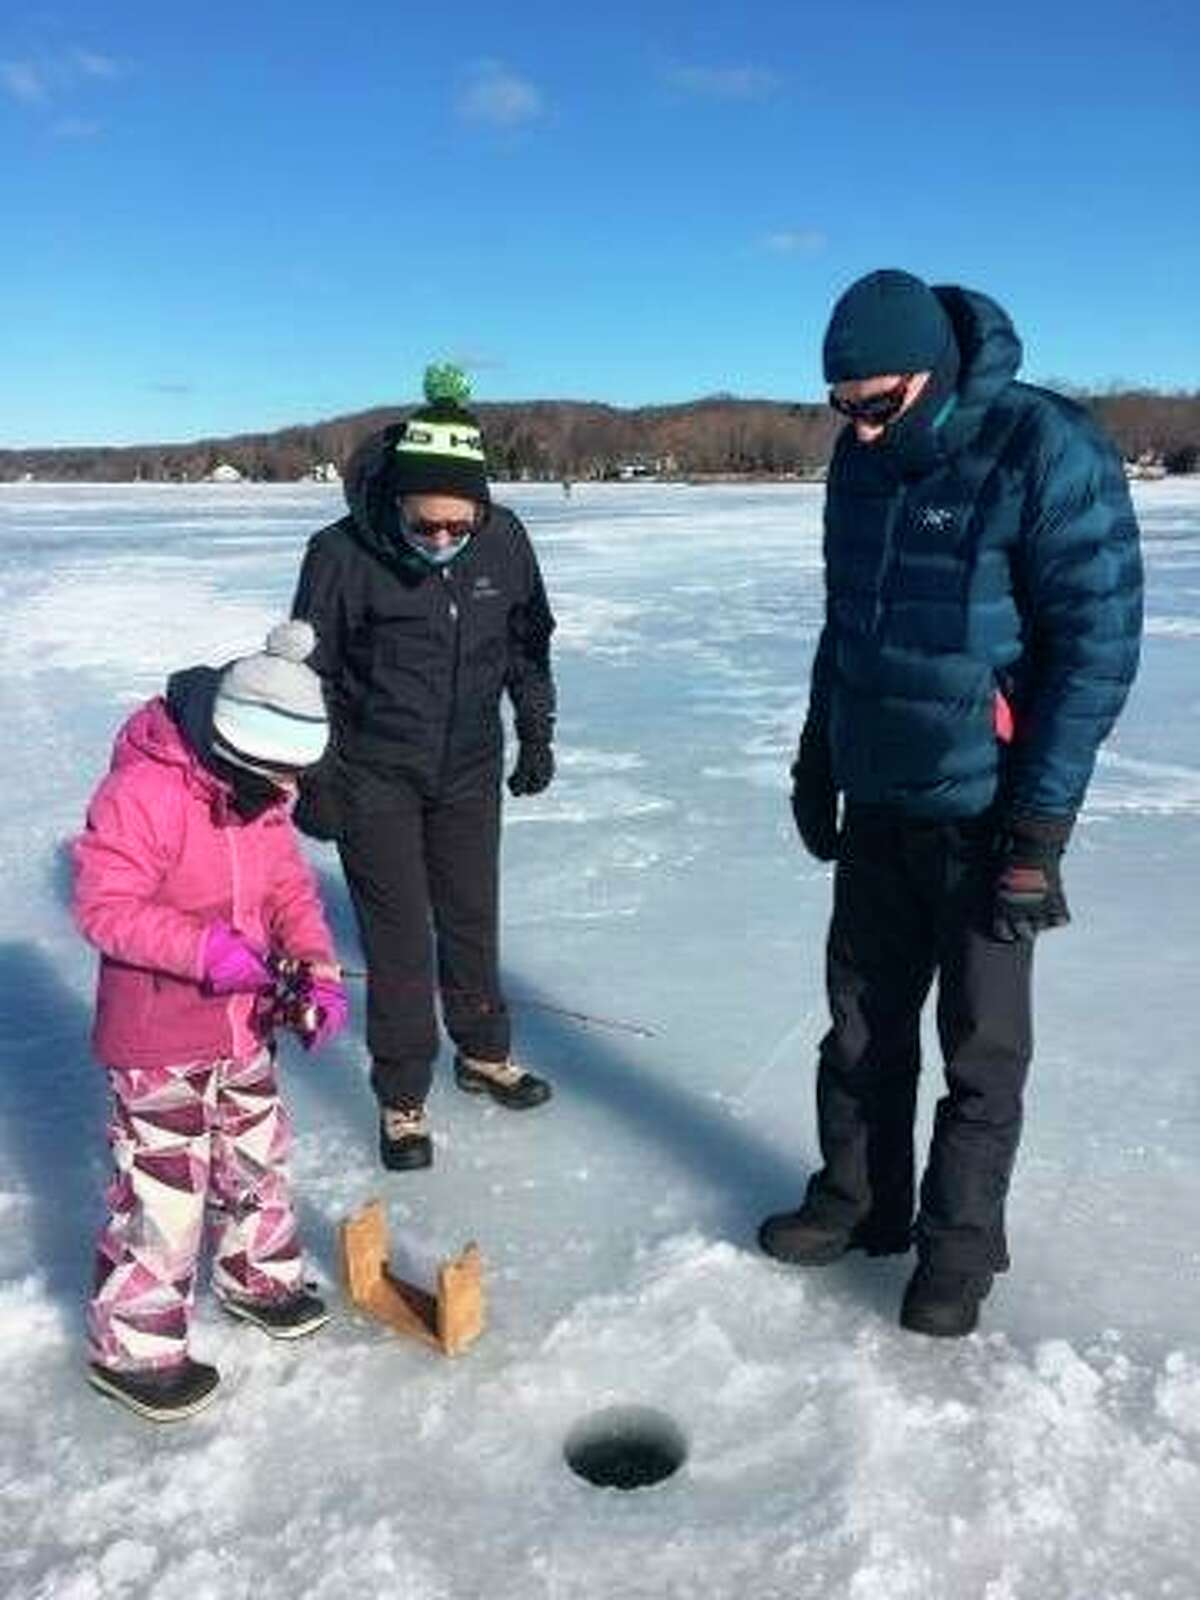 The Manistee County Sport Fishing Association will hold its third annual Portage Lake Ice Fun Fish onSaturday, Feb. 27. (News Advocate file photo)